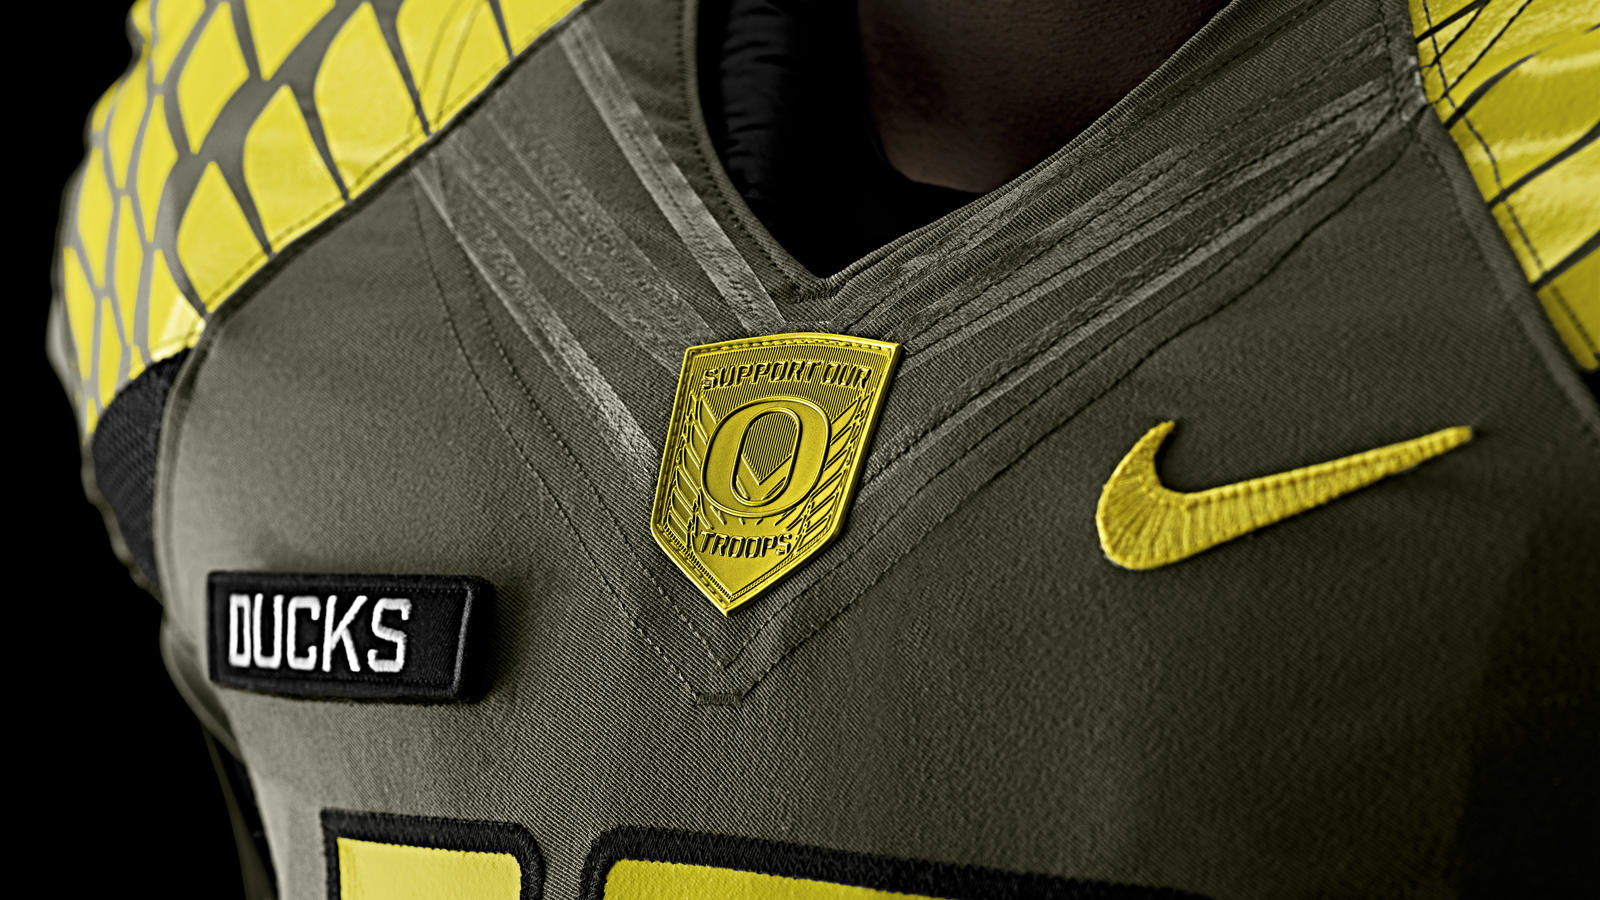 nike-football-uniform-uofo-away-collar